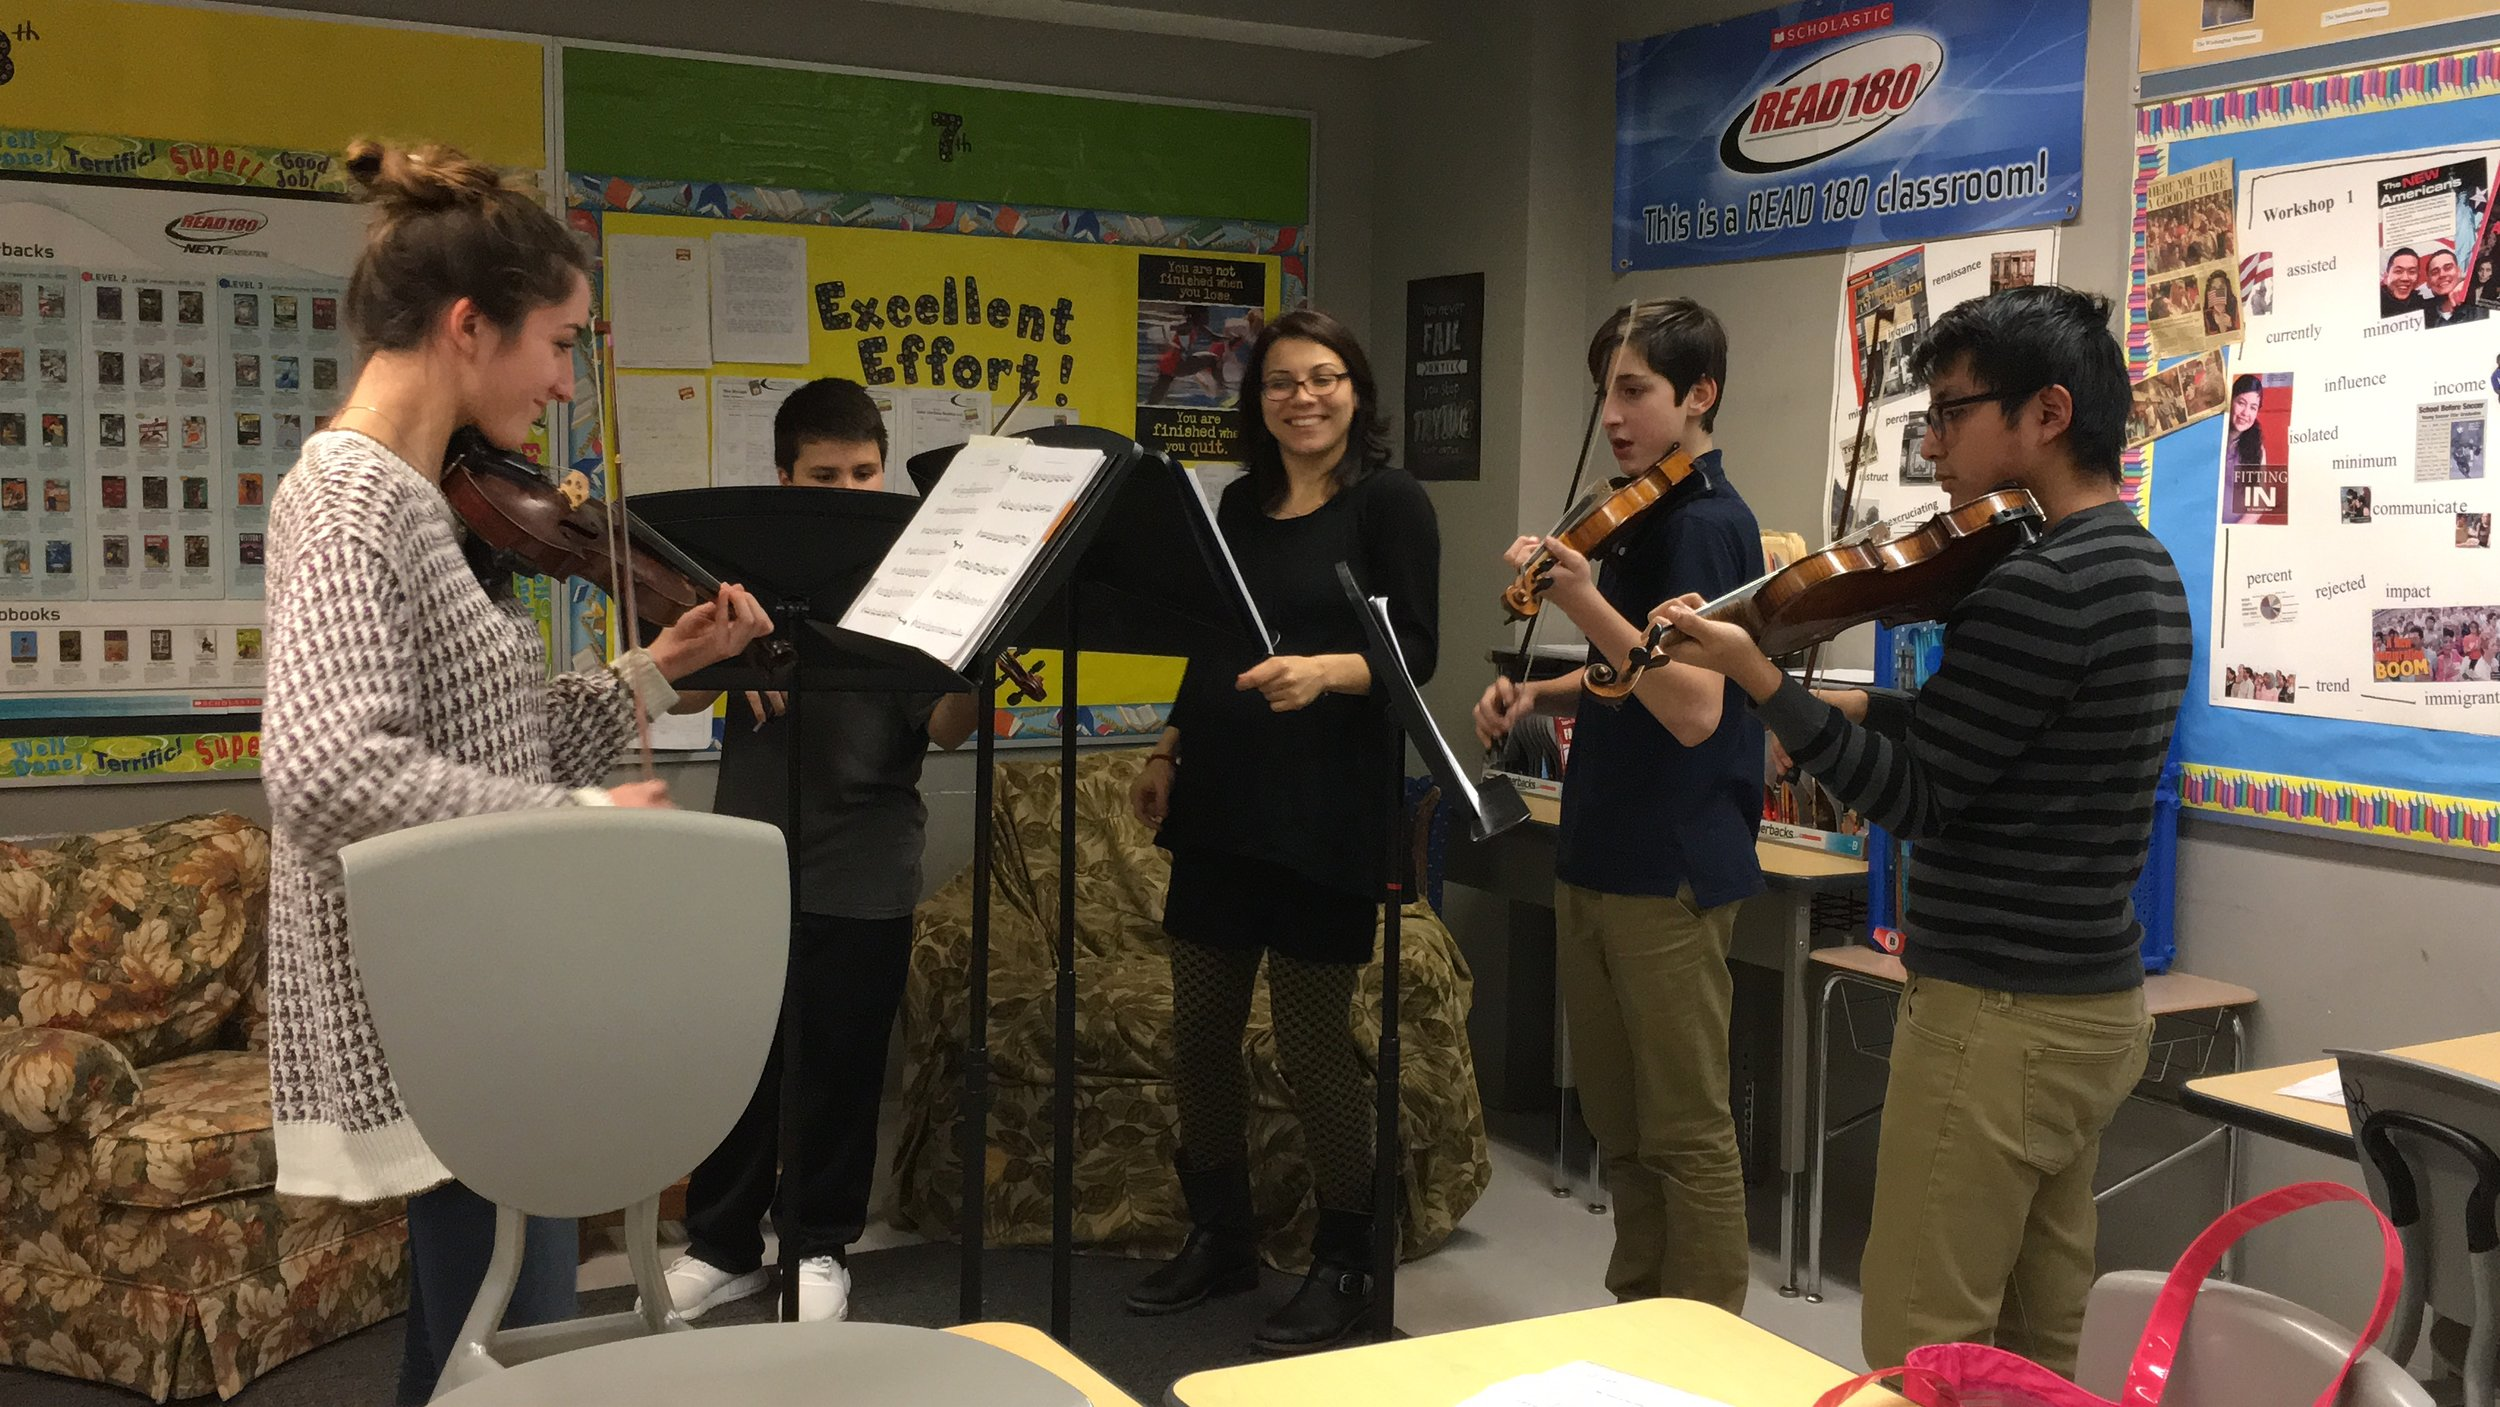 Combined private lesson at John C. Daniels. From left to right: Audrey, Justin, Ms. Yaira, Nicolas, and Cris.  Photo Credit: Karina Irizarry